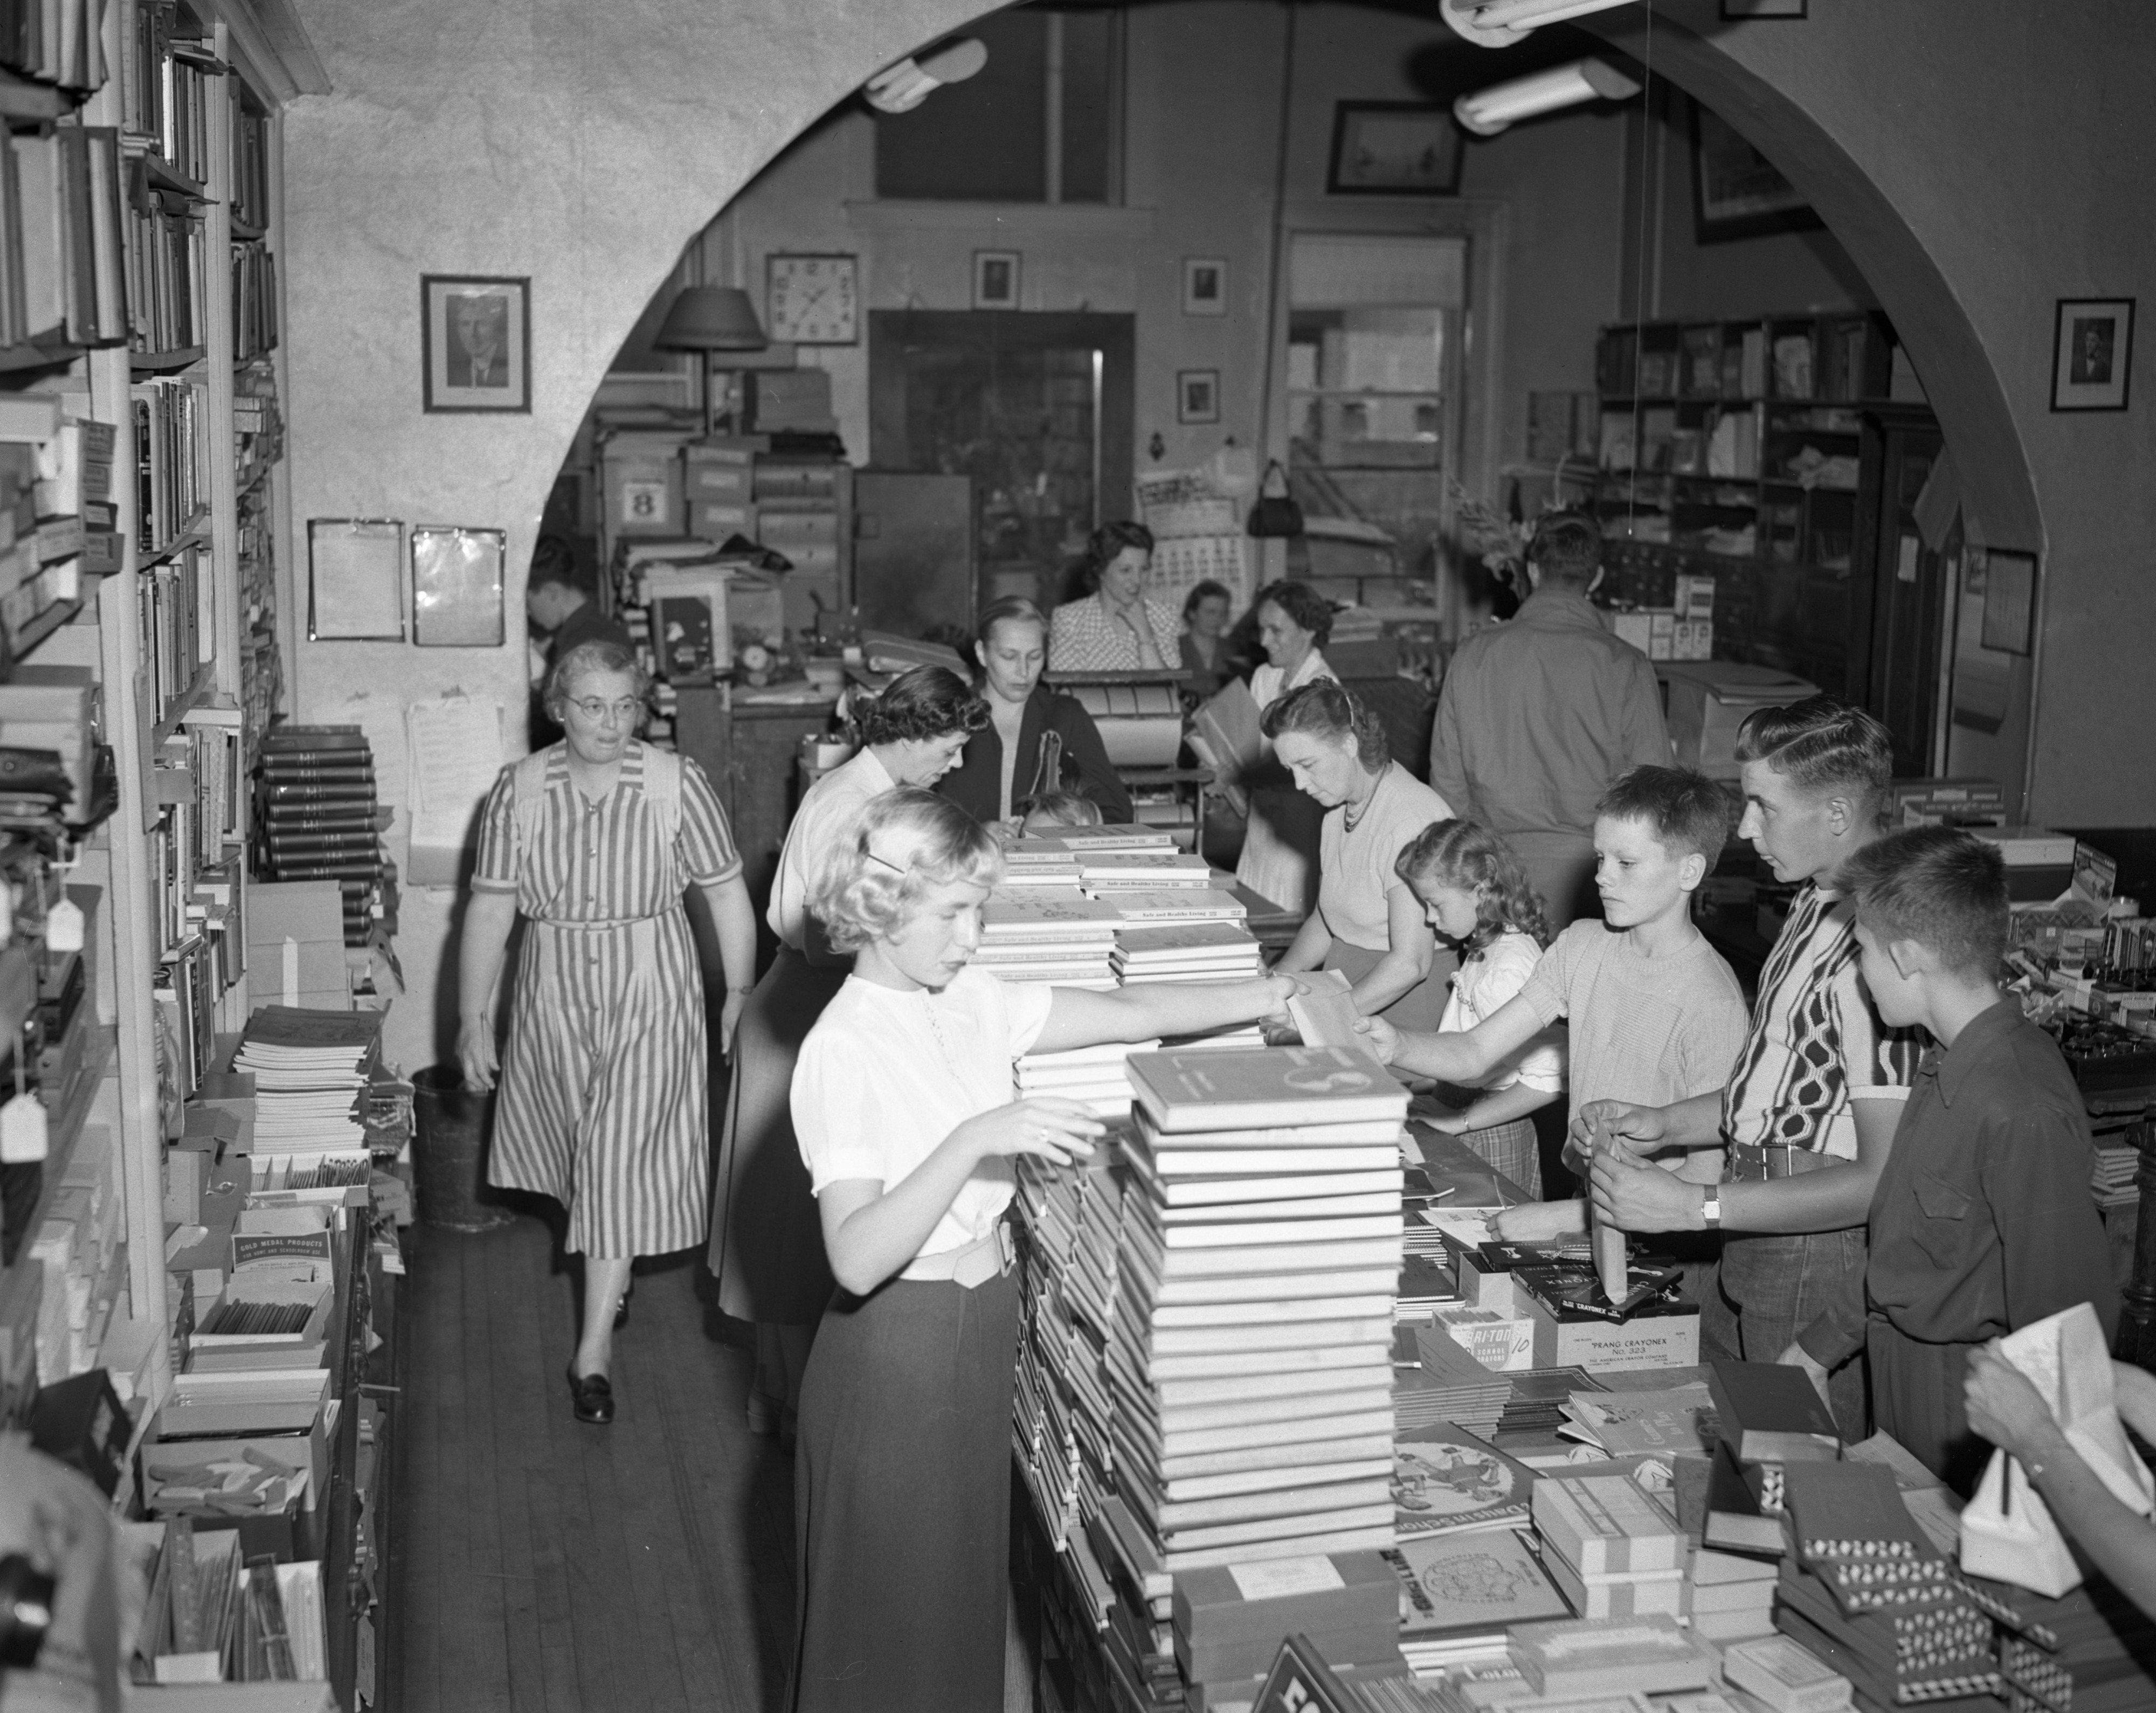 Children Buying Books at Wahr's Bookstore, September 1950 image